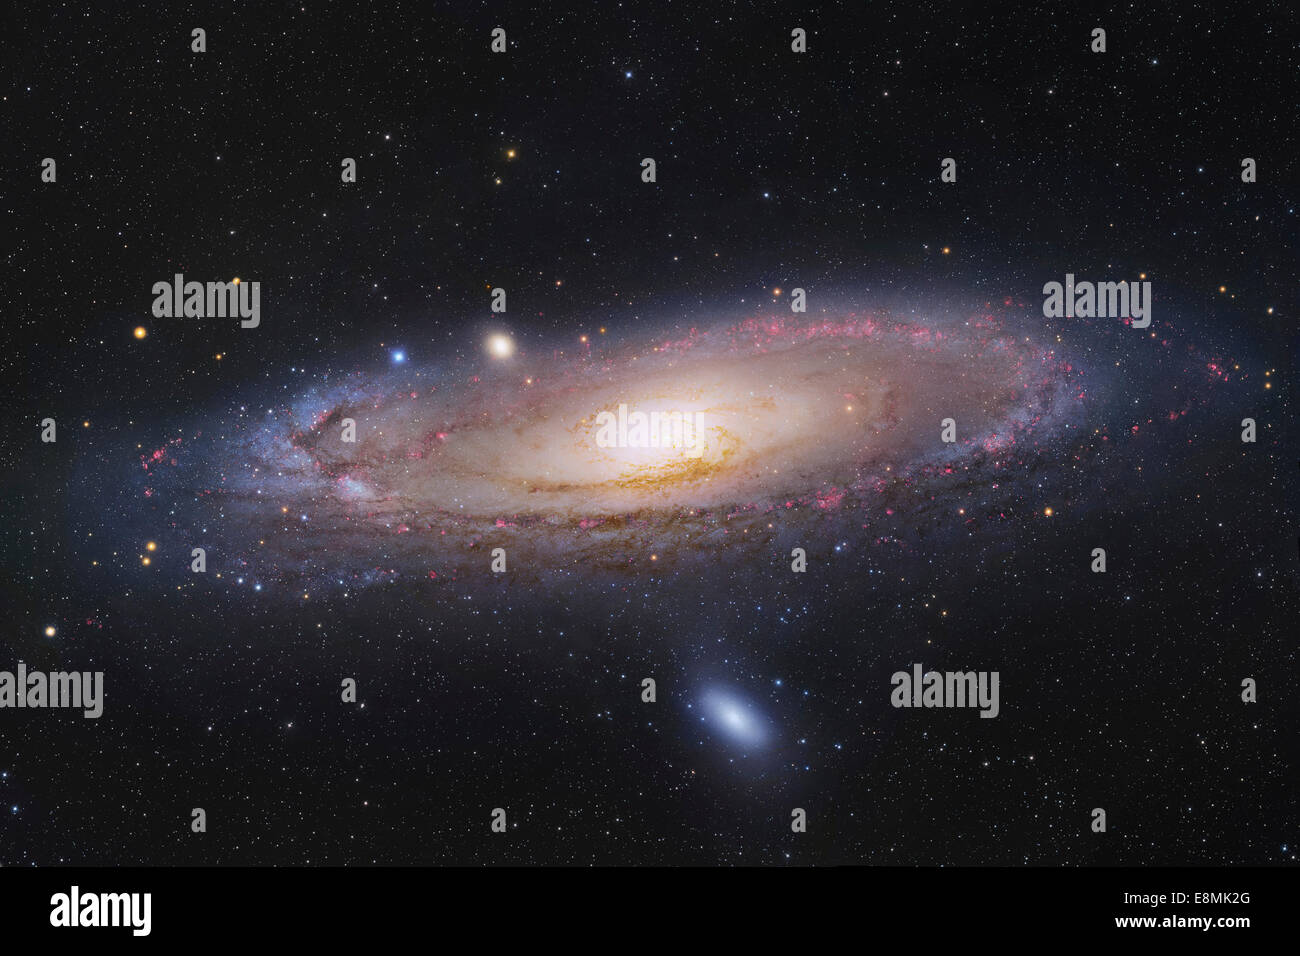 The Andromeda Galaxy, also known as Messier 31 or NGC 224, in the constellation Andromeda. - Stock Image